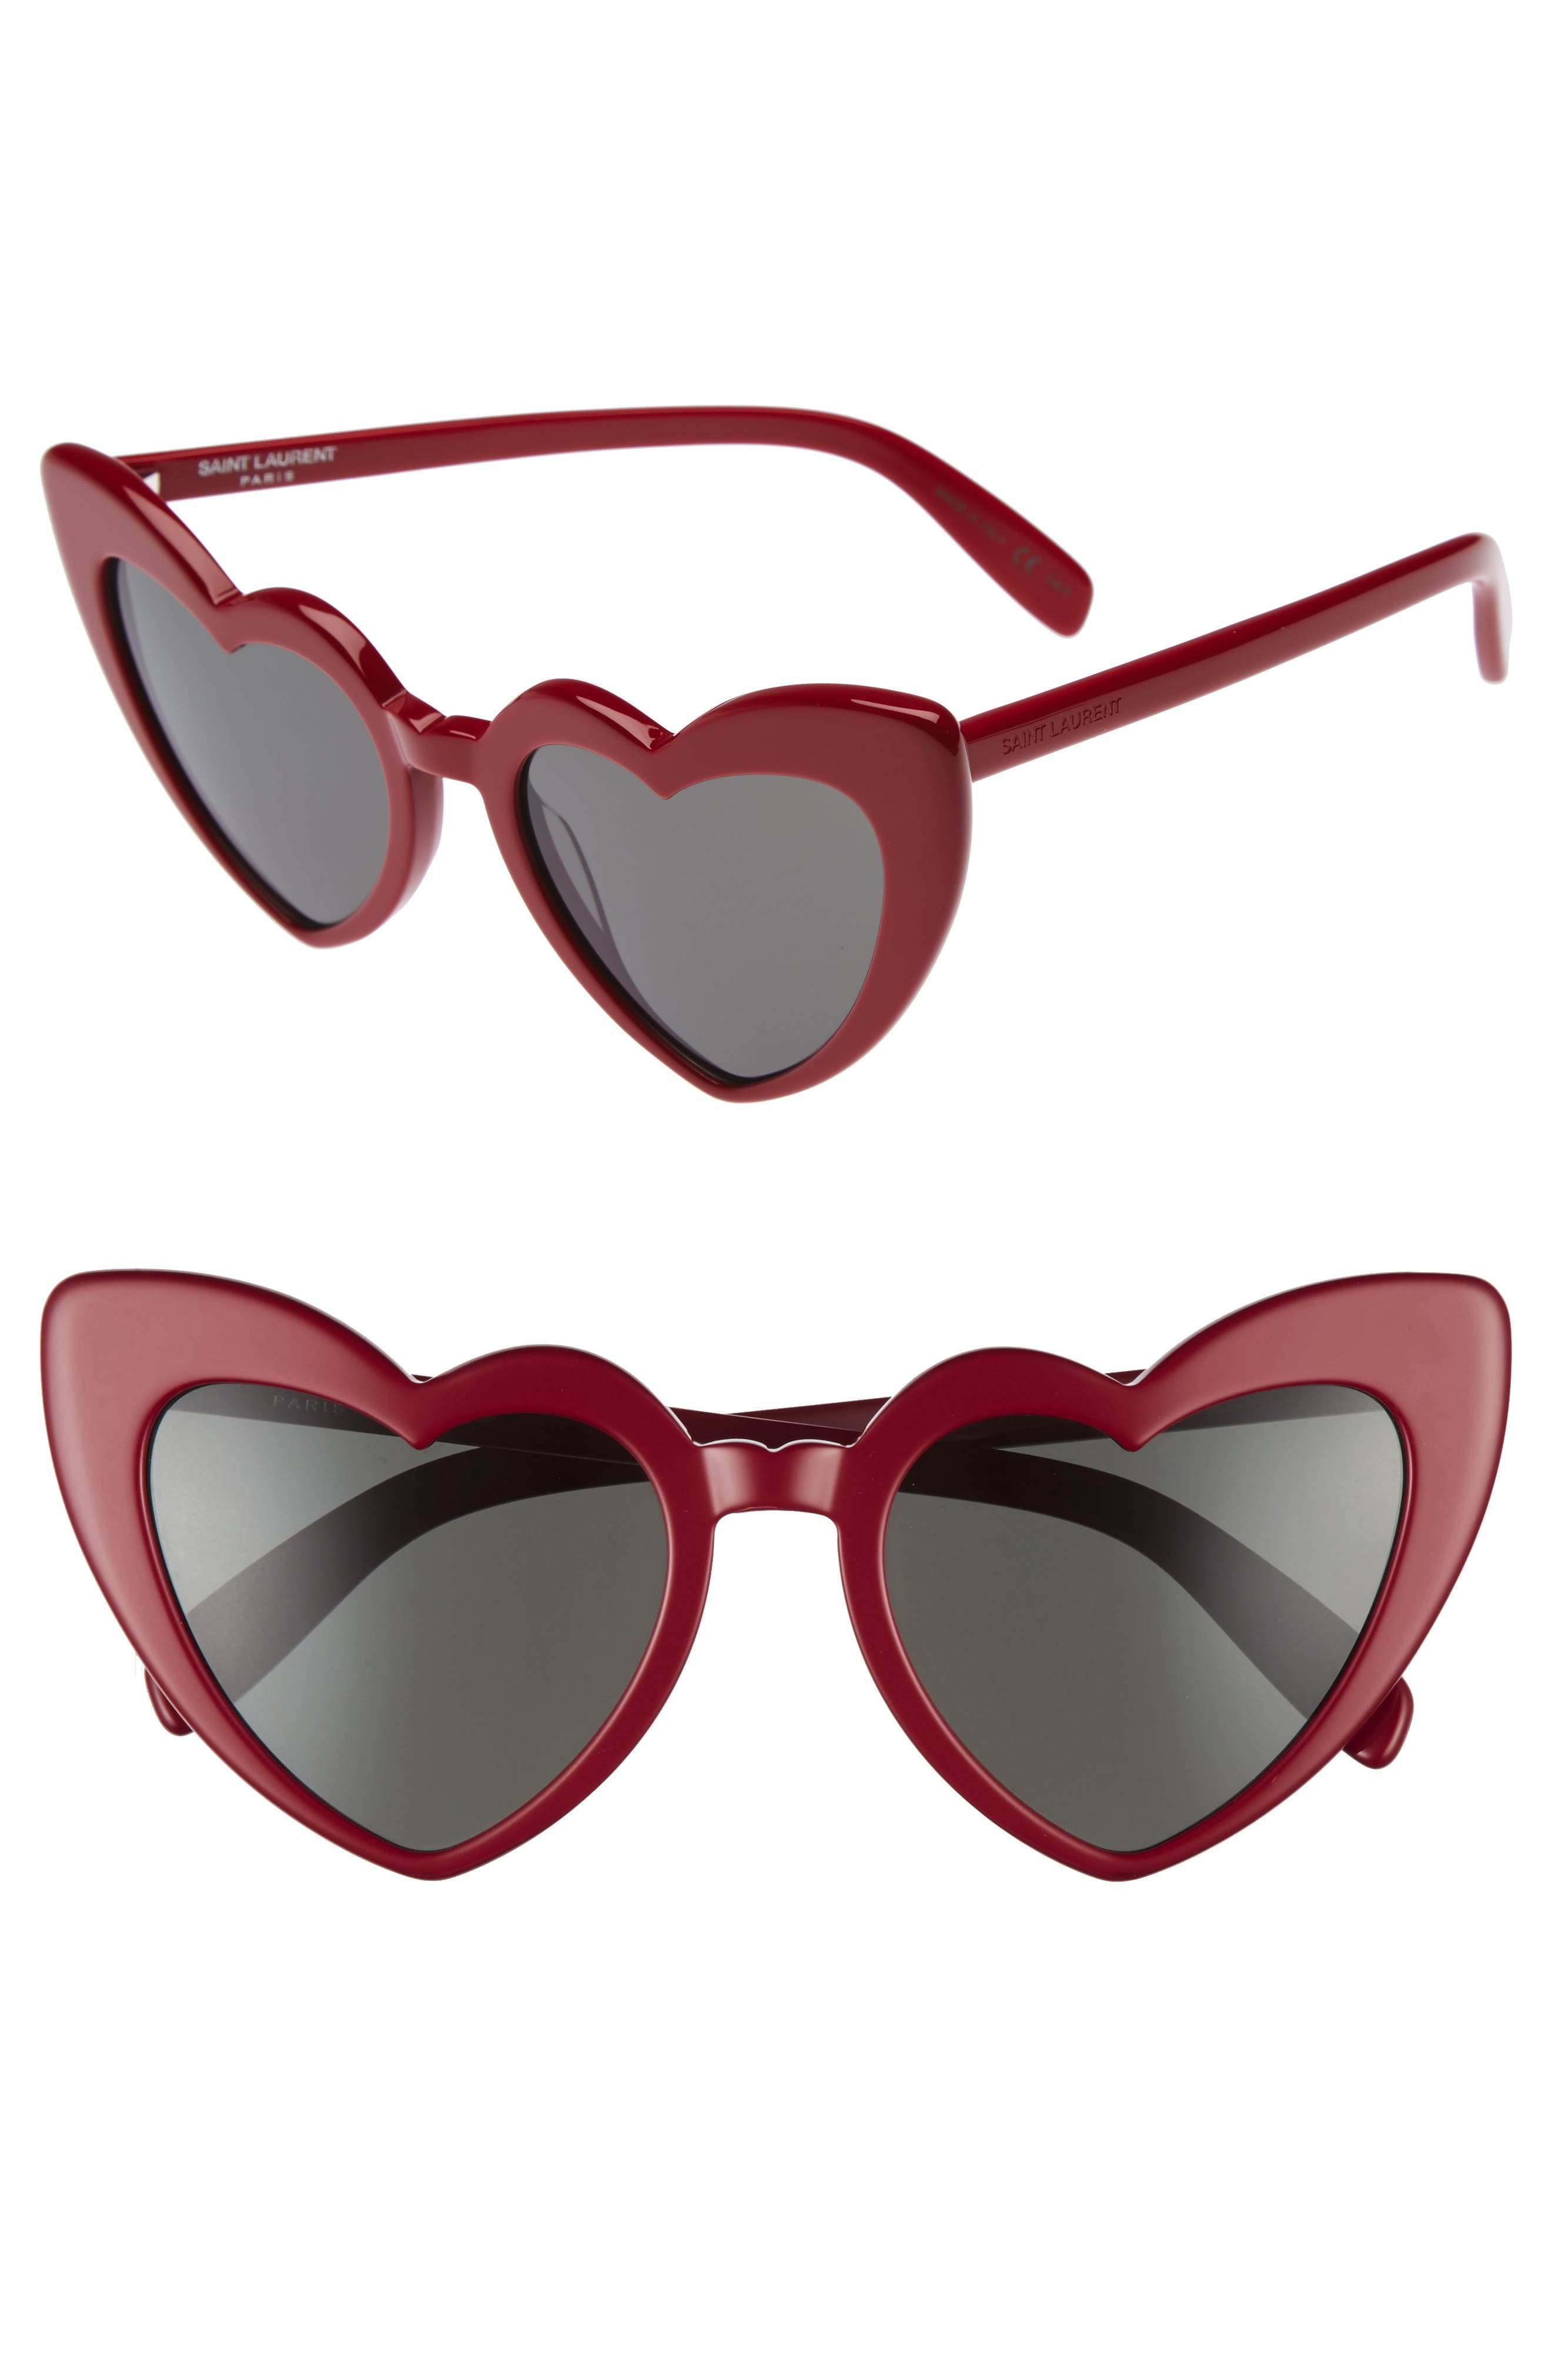 Loulou 54mm Heart Sunglasses,                             Main thumbnail 1, color,                             RED/ GREY